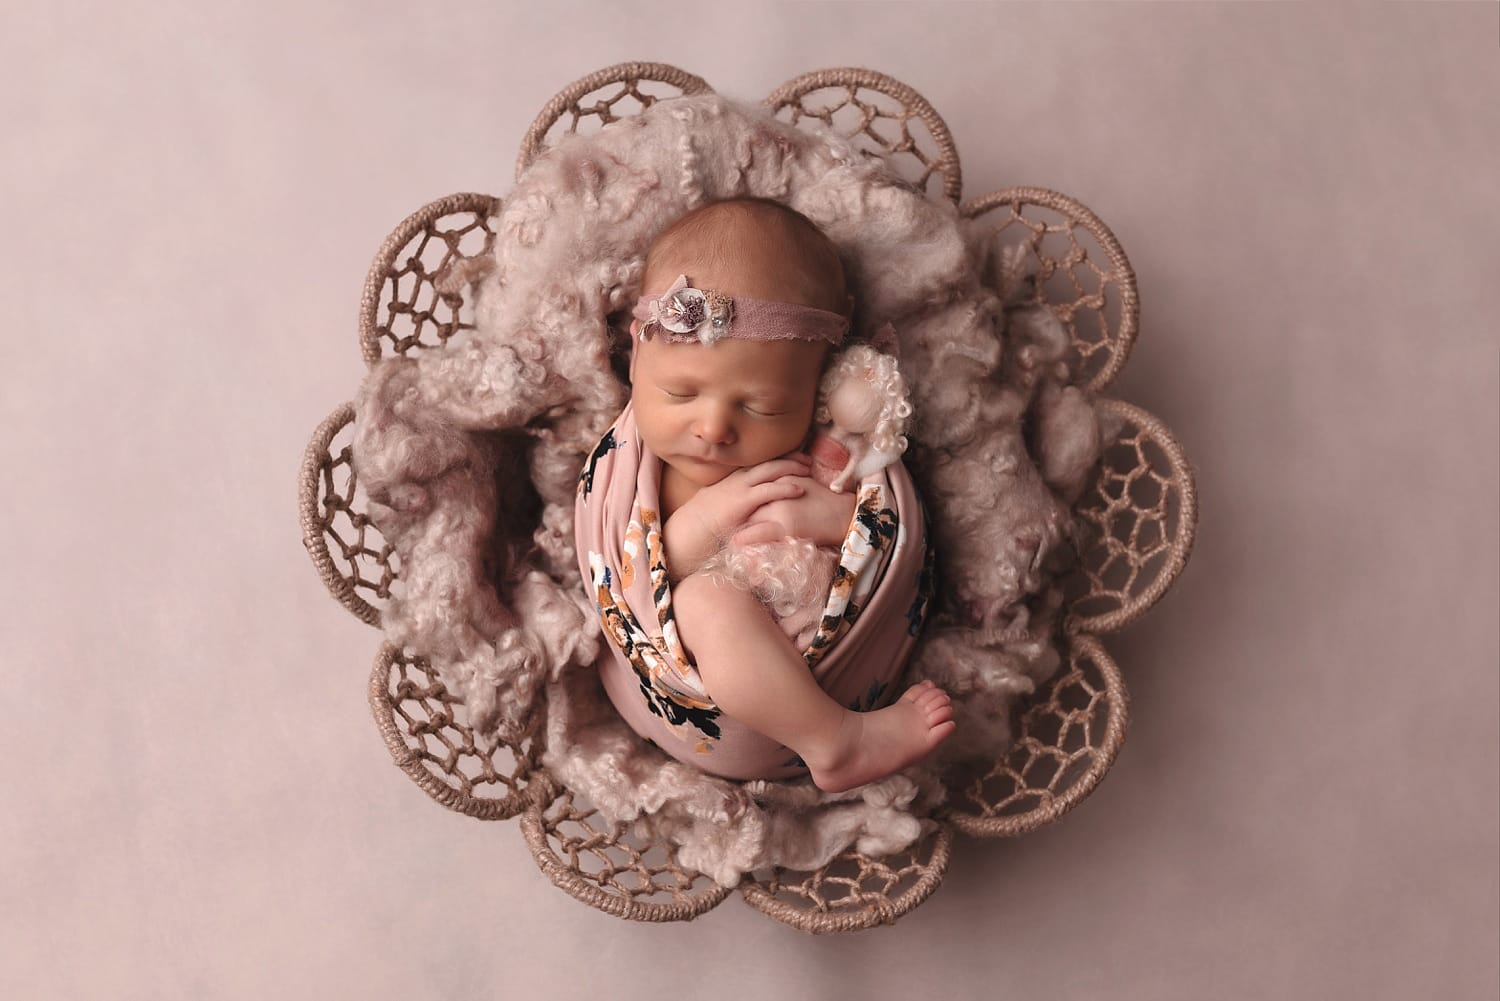 Artistic studio newborn photography by Newington, CT photographer The Flash Lady Photography